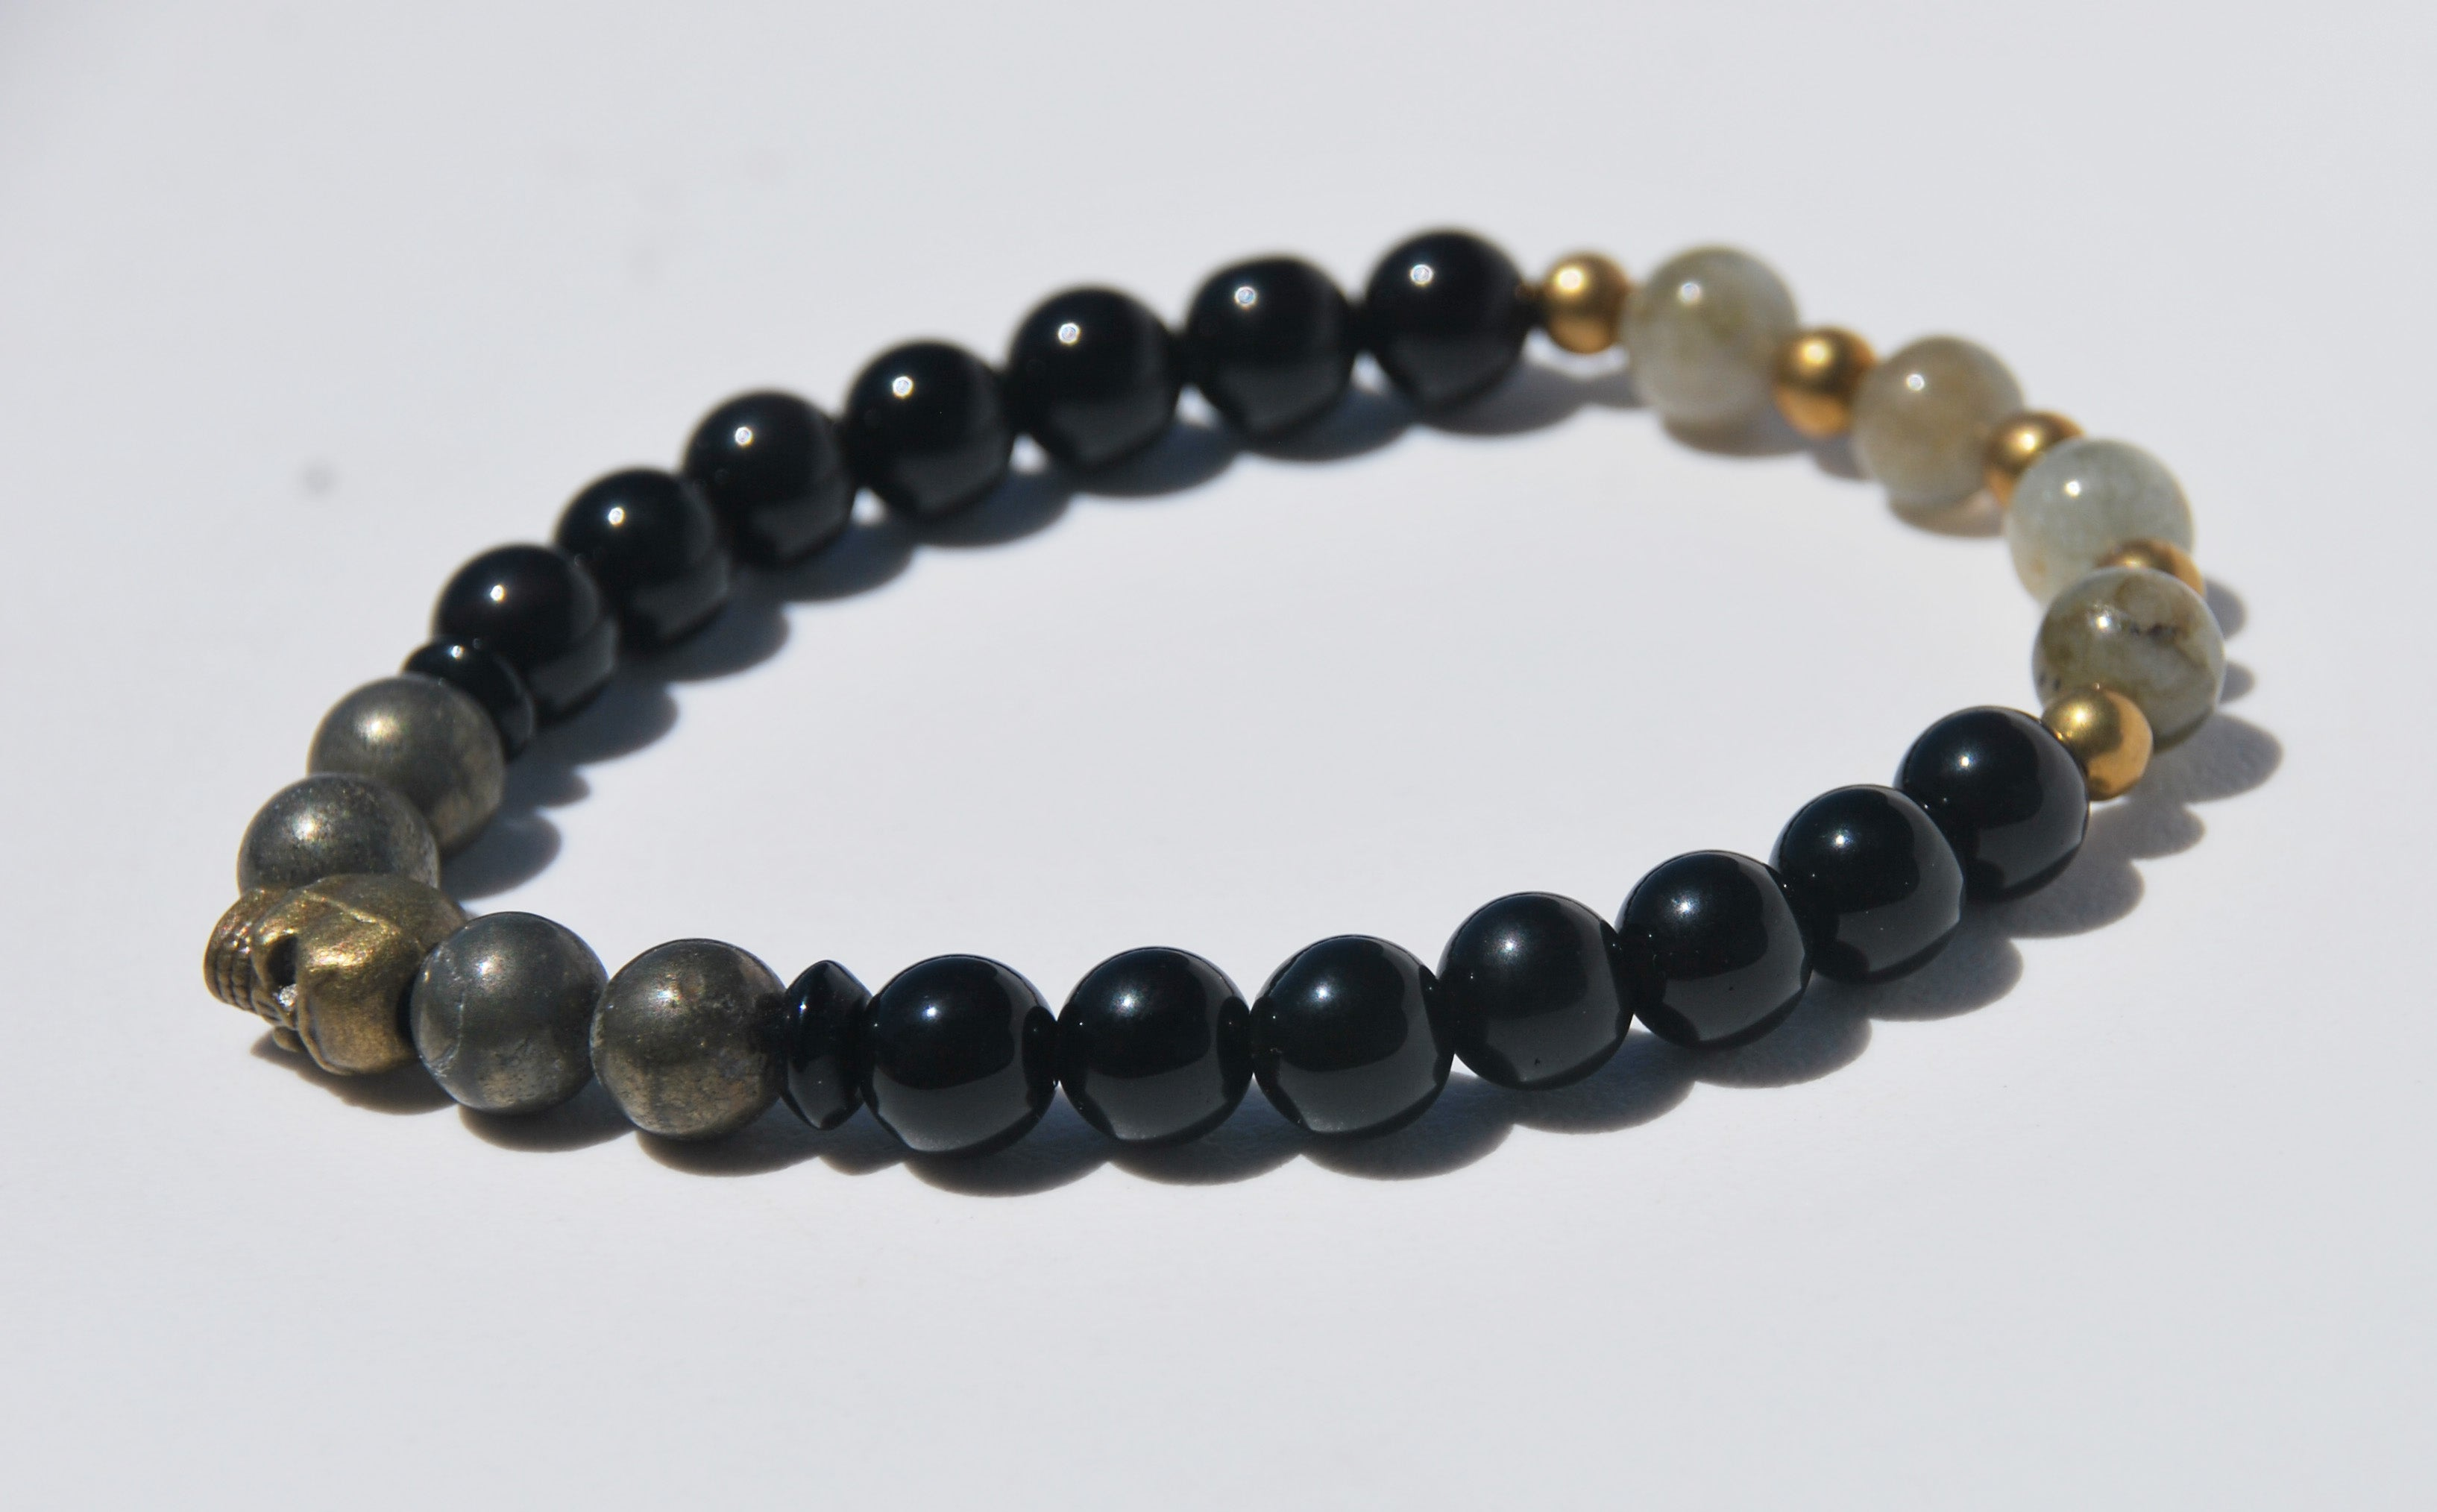 8mm Obsidian, Hematite & Labradorite Stretch Bracelet with Skull